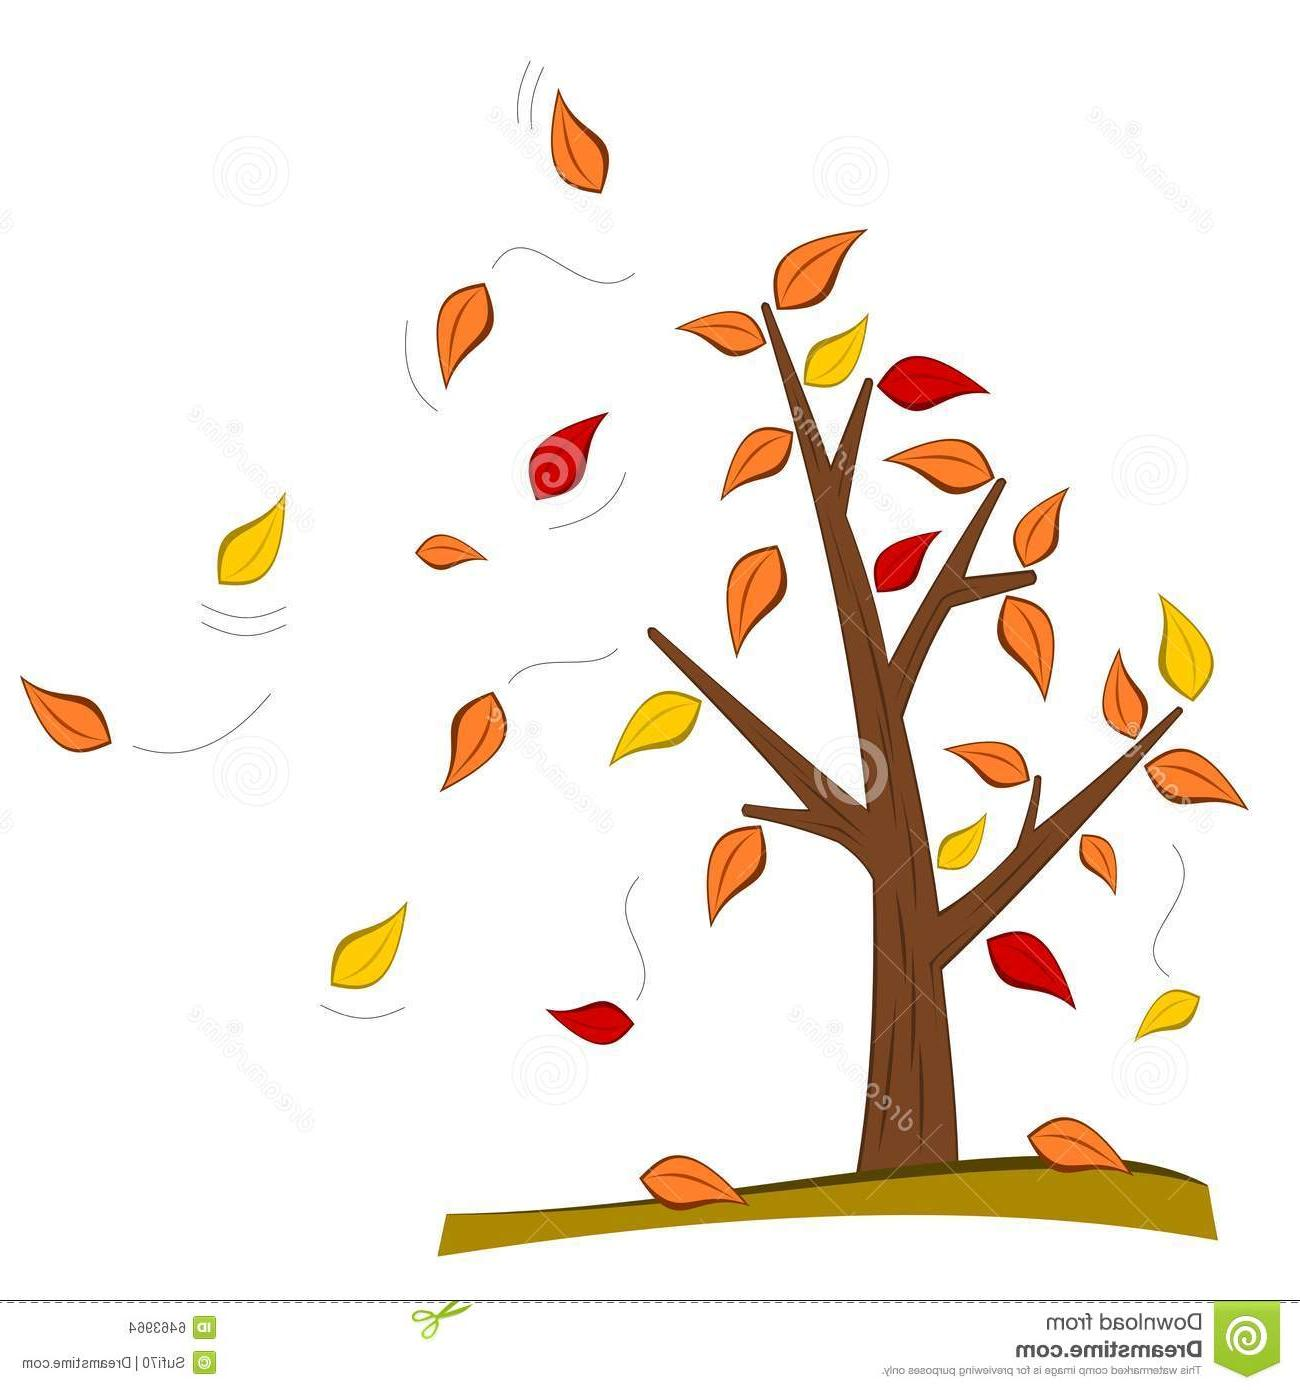 Best Free Animated Fall Tree Vector Images » Free Vector Art, Images.